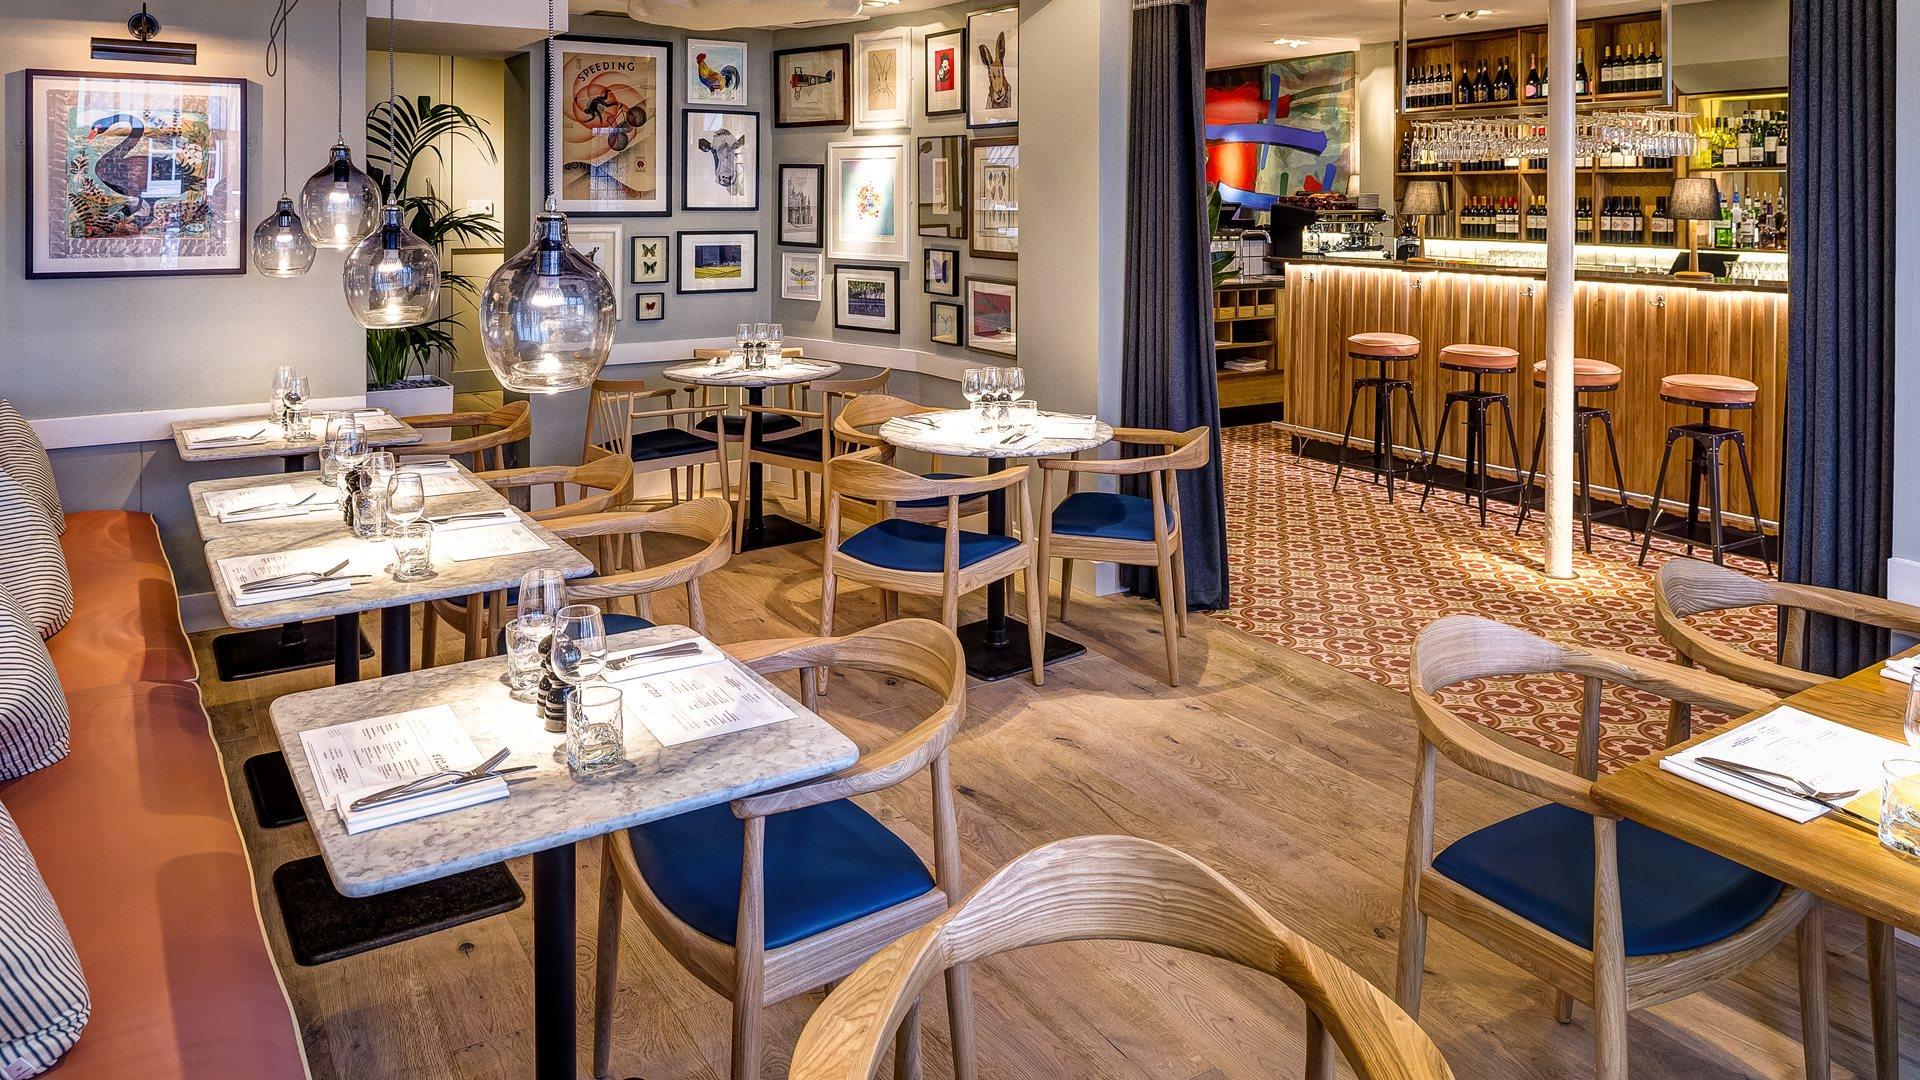 Lussmanns opens for breakfast in Hitchin